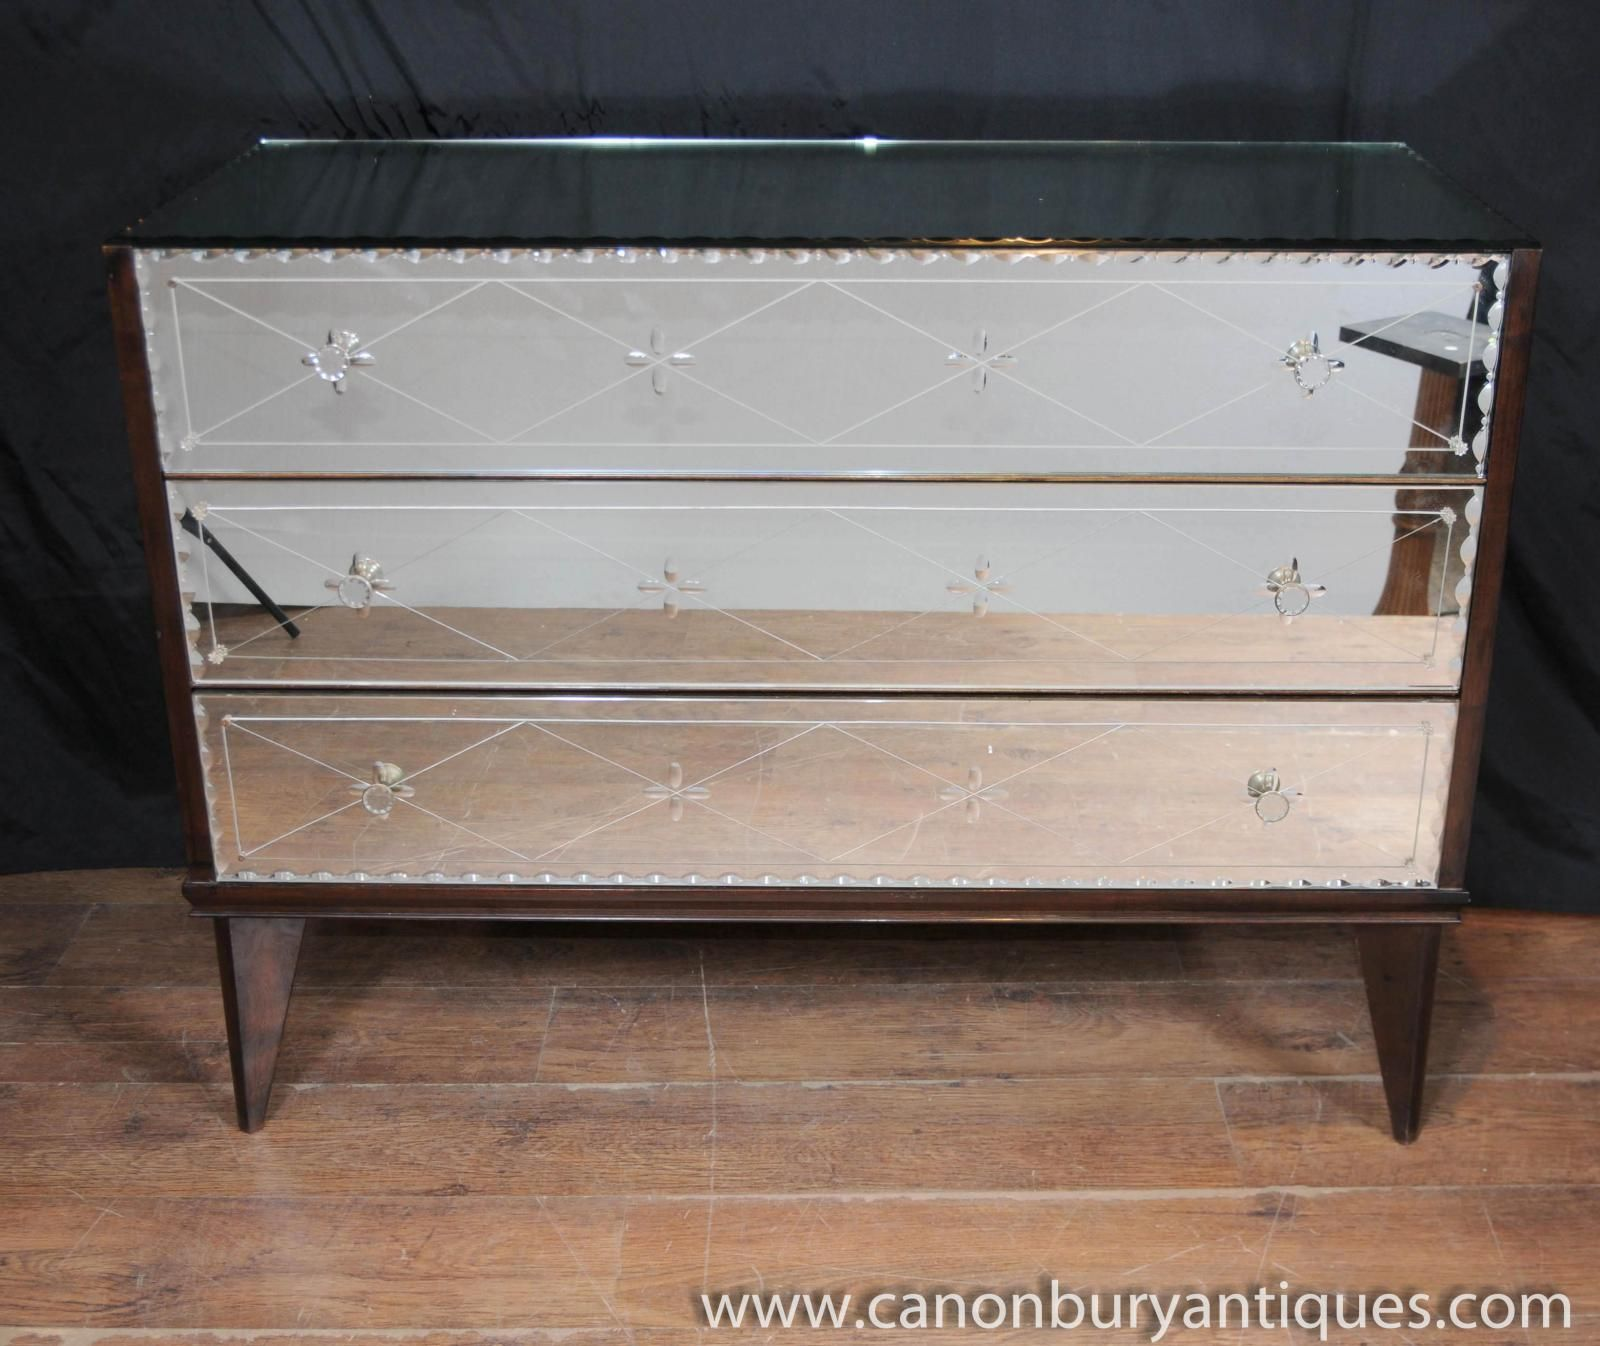 Ordinaire Photo Of Antique Mirrored Art Deco Chest Drawers Commode Glass 1930s  Furniture